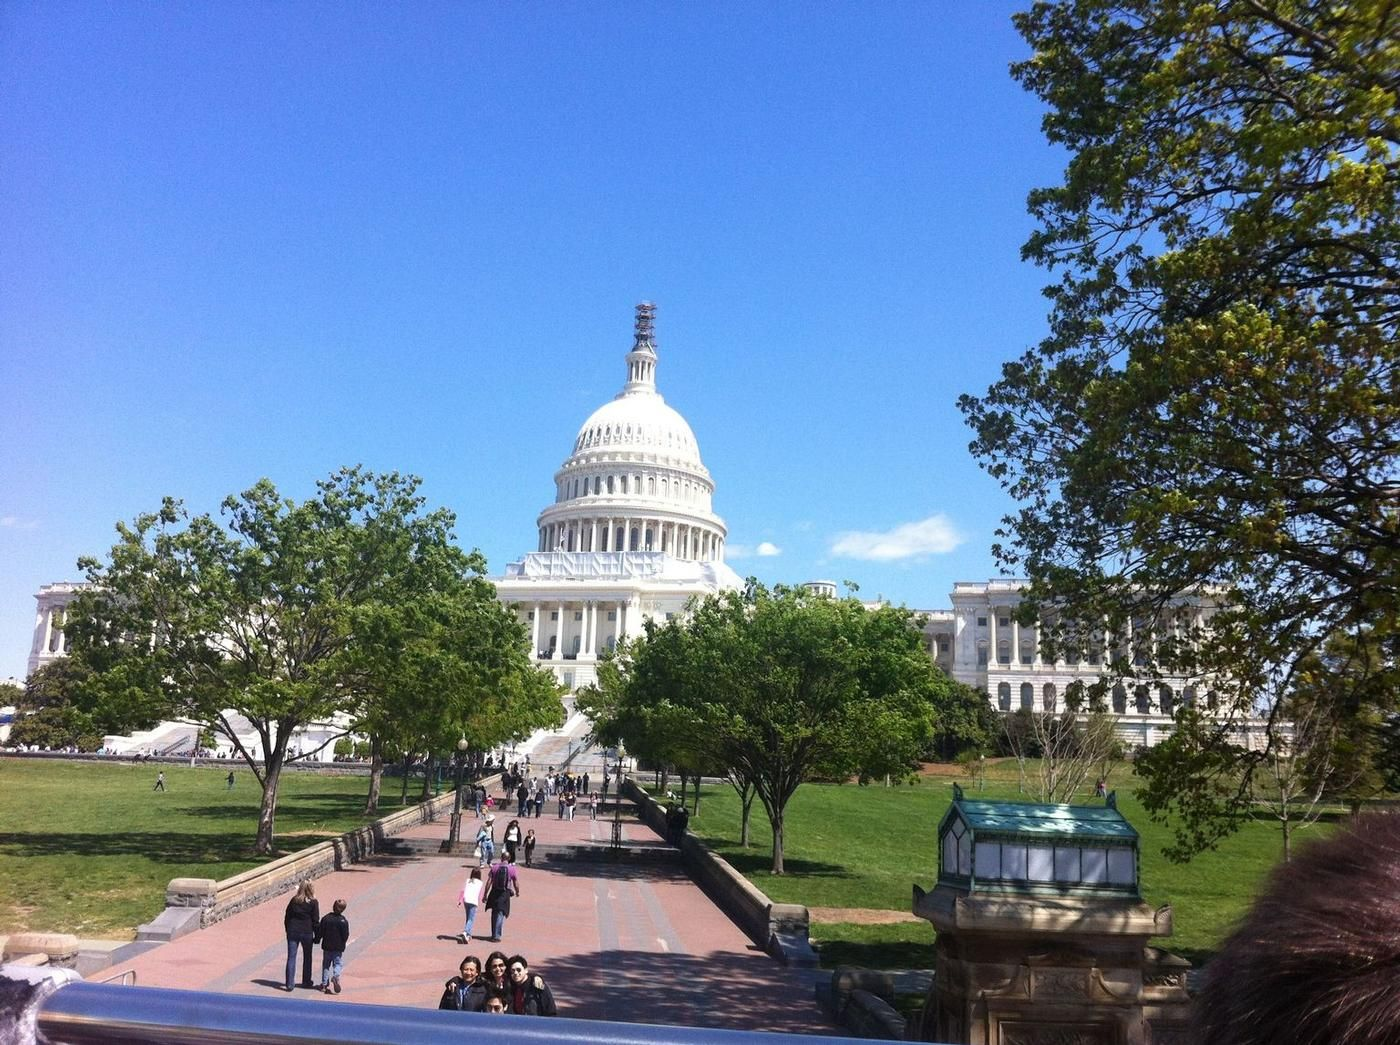 April 9 2012, sunny day in DC